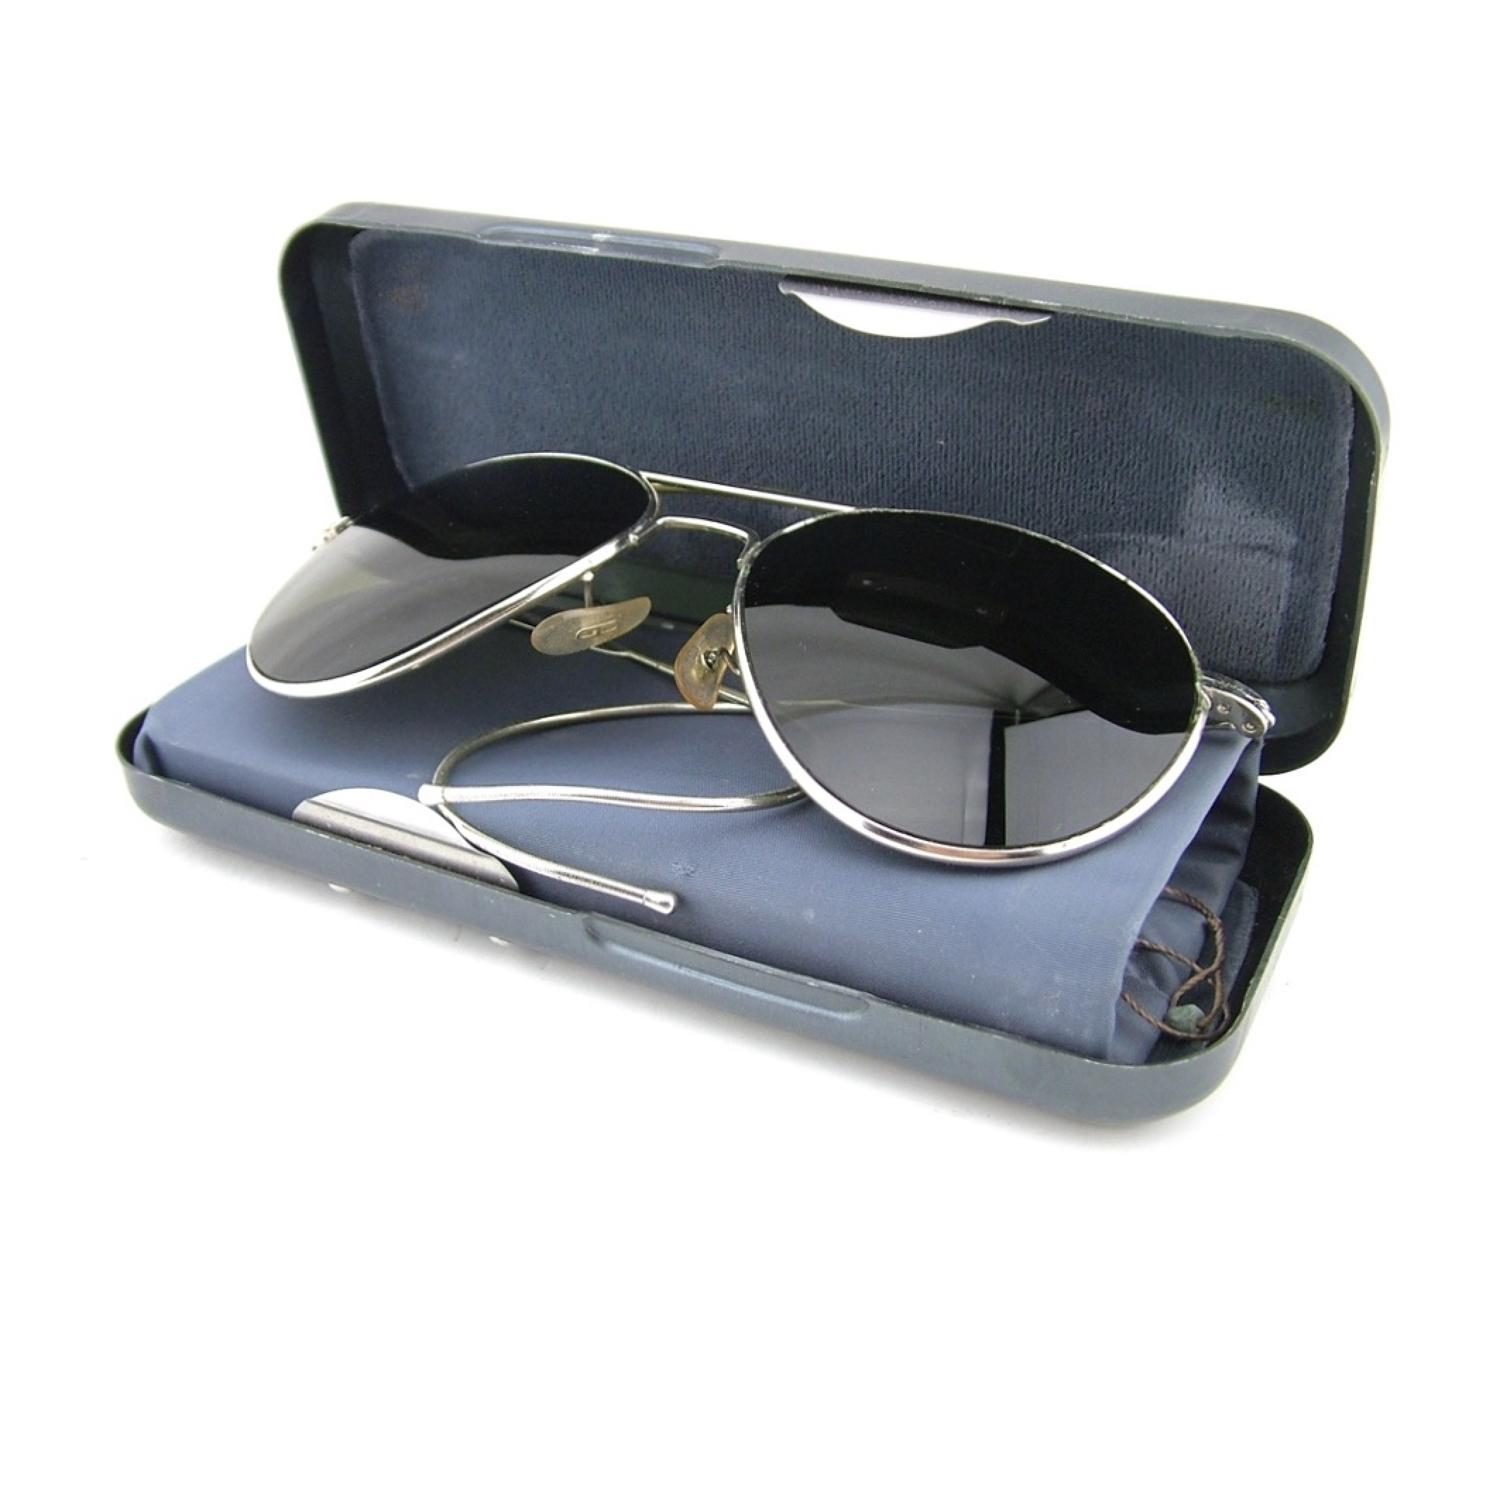 RAF Mk.11 spectacles, cased